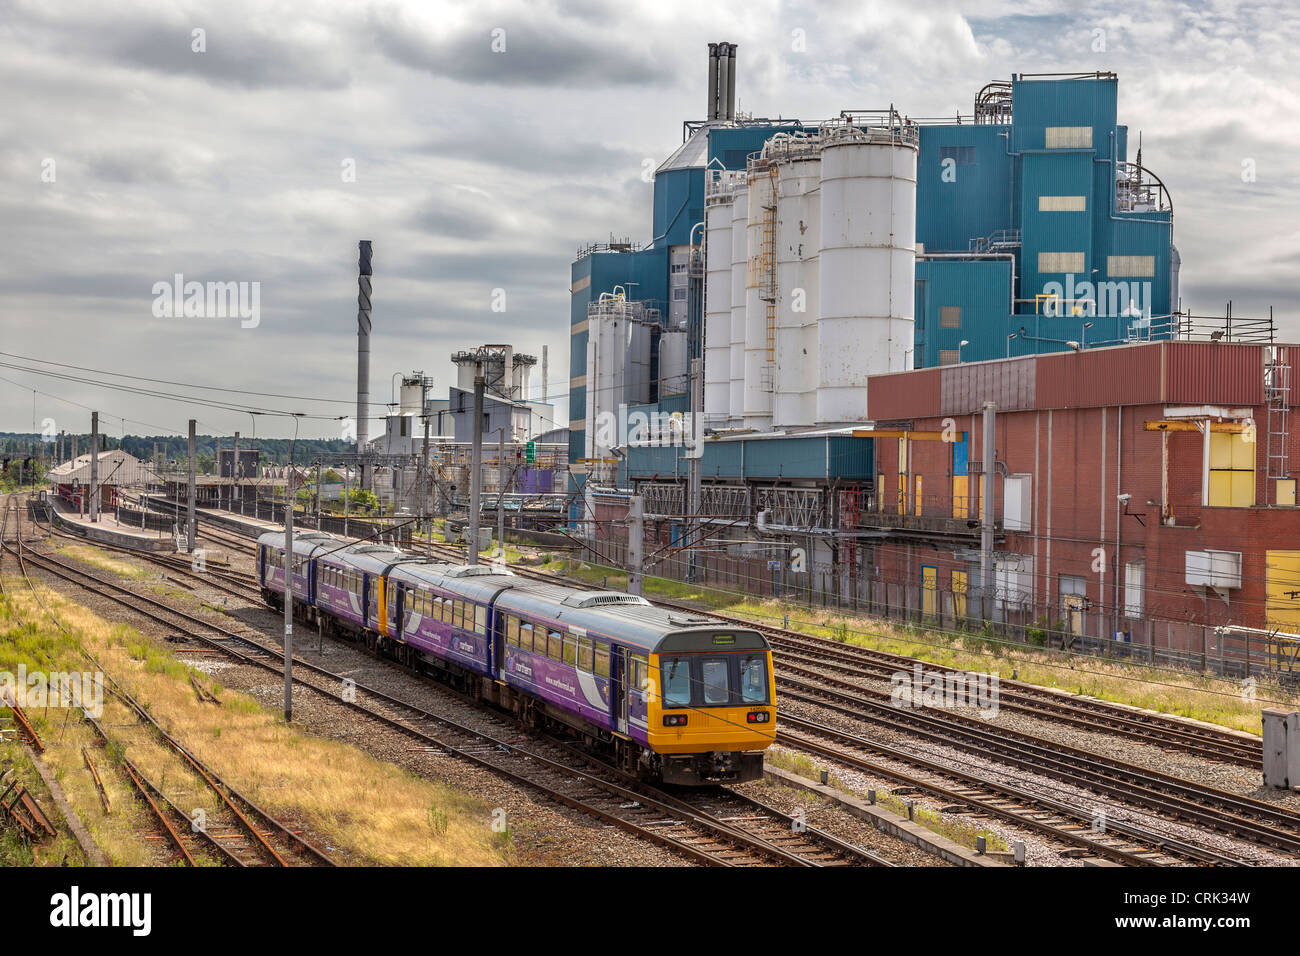 Warrington Bank Quay station with the Unilever factory behind. - Stock Image